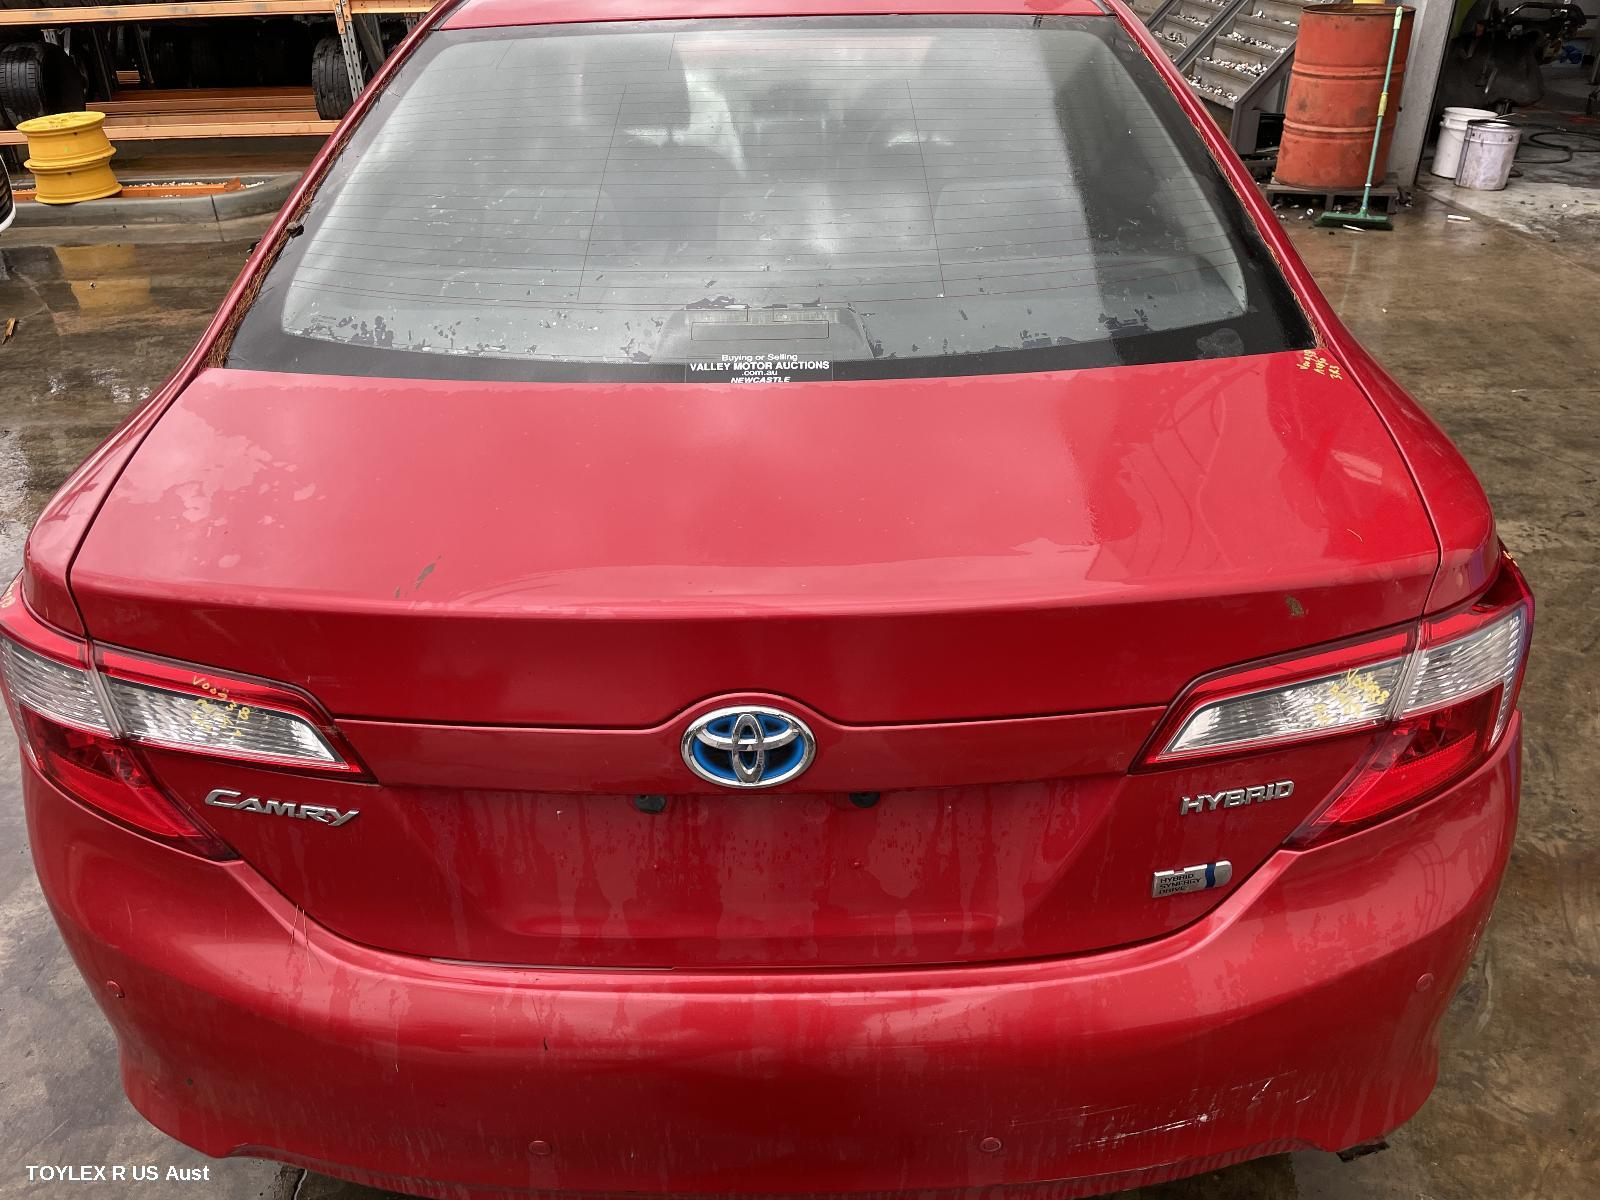 TOYOTA CAMRY, Bootlid/Tailgate, BOOTLID, AVV50, HYBRID H, NON SPOILER, W/ CAMERA TYPE, 01/12-